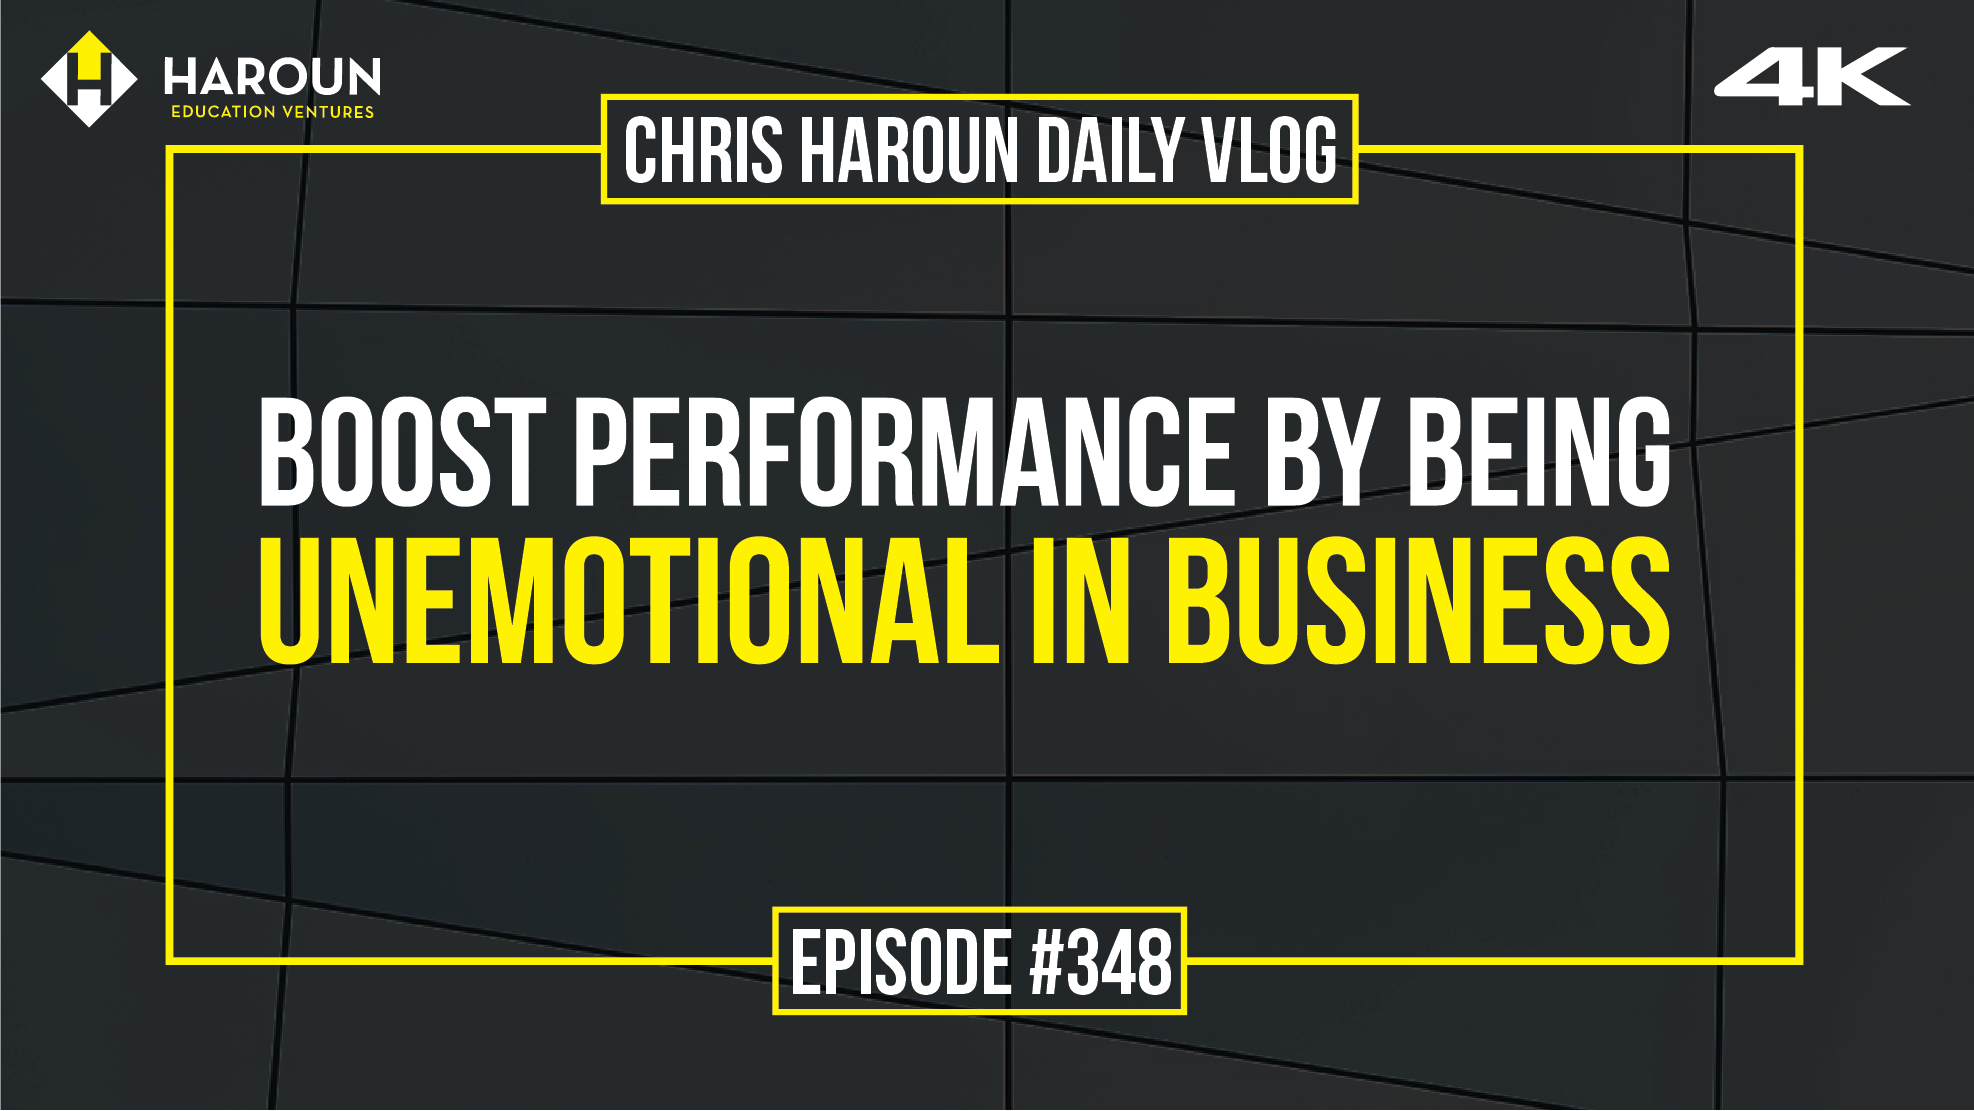 VLOG_348_7_14_2019_Boost Performance by Being Unemotional in Business.png